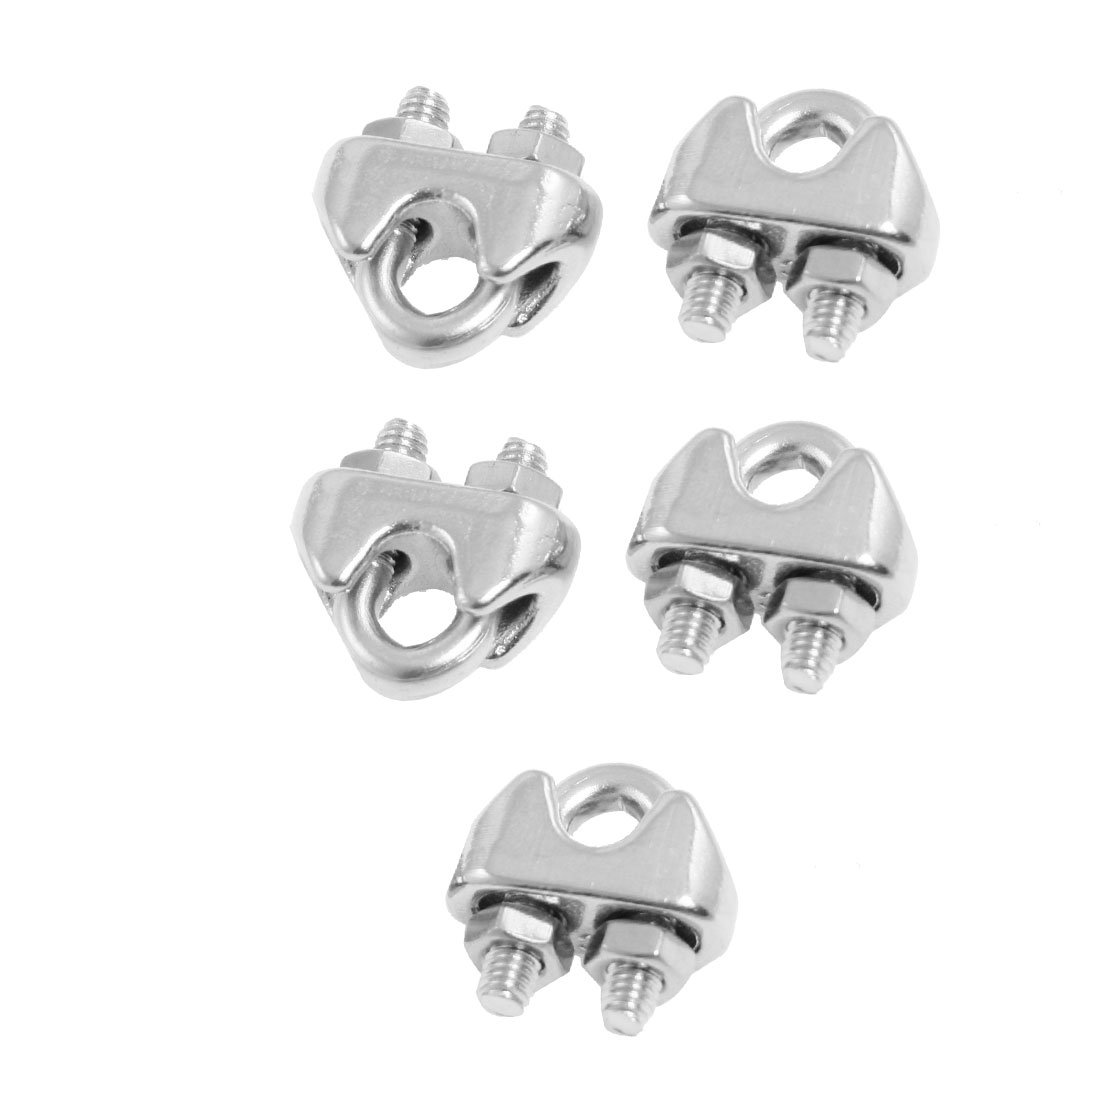 In stock free shipping pcs stainless steel saddle